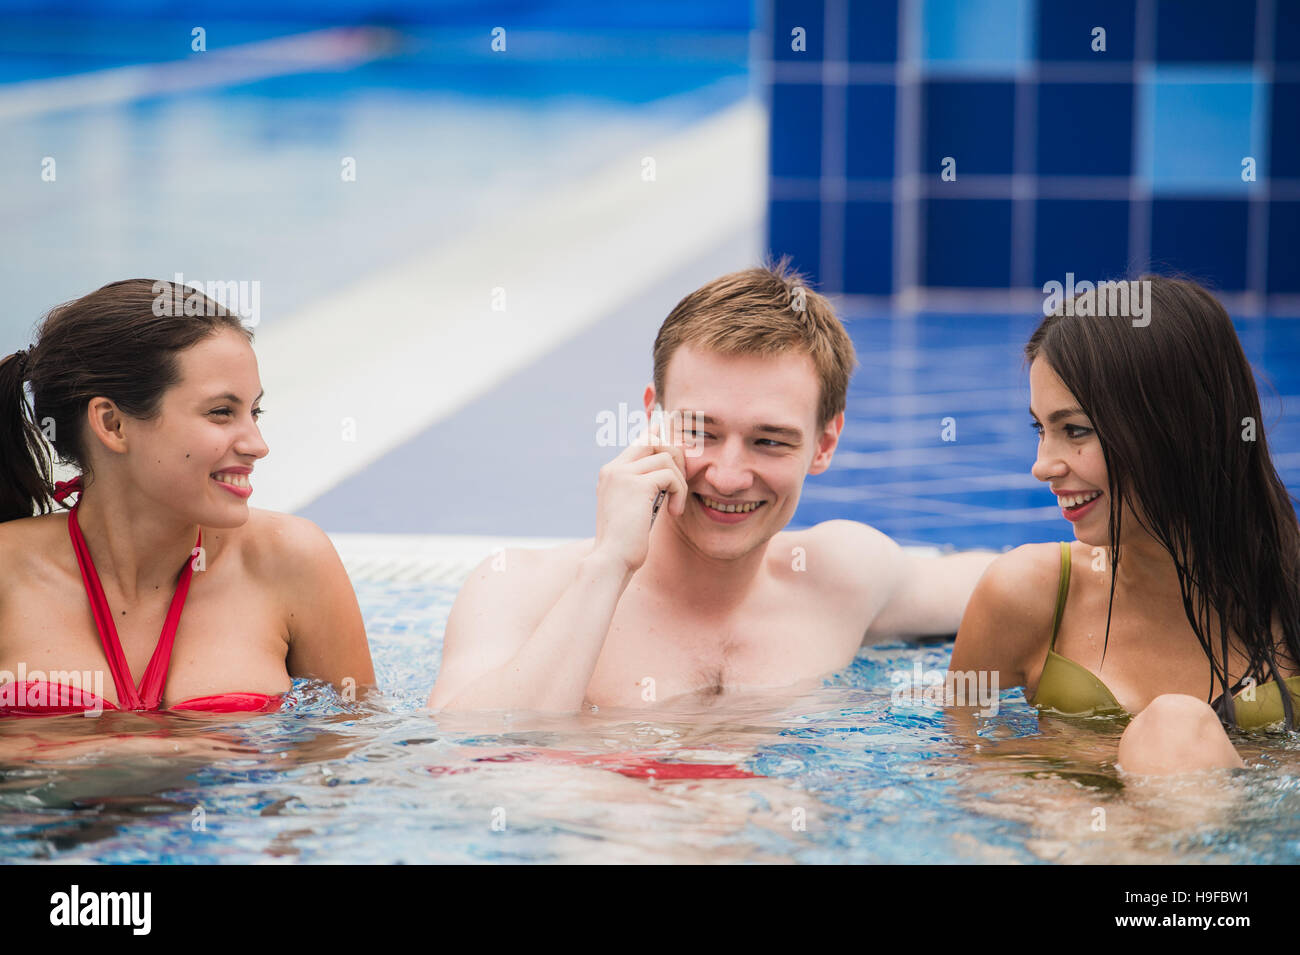 Whores in Pool